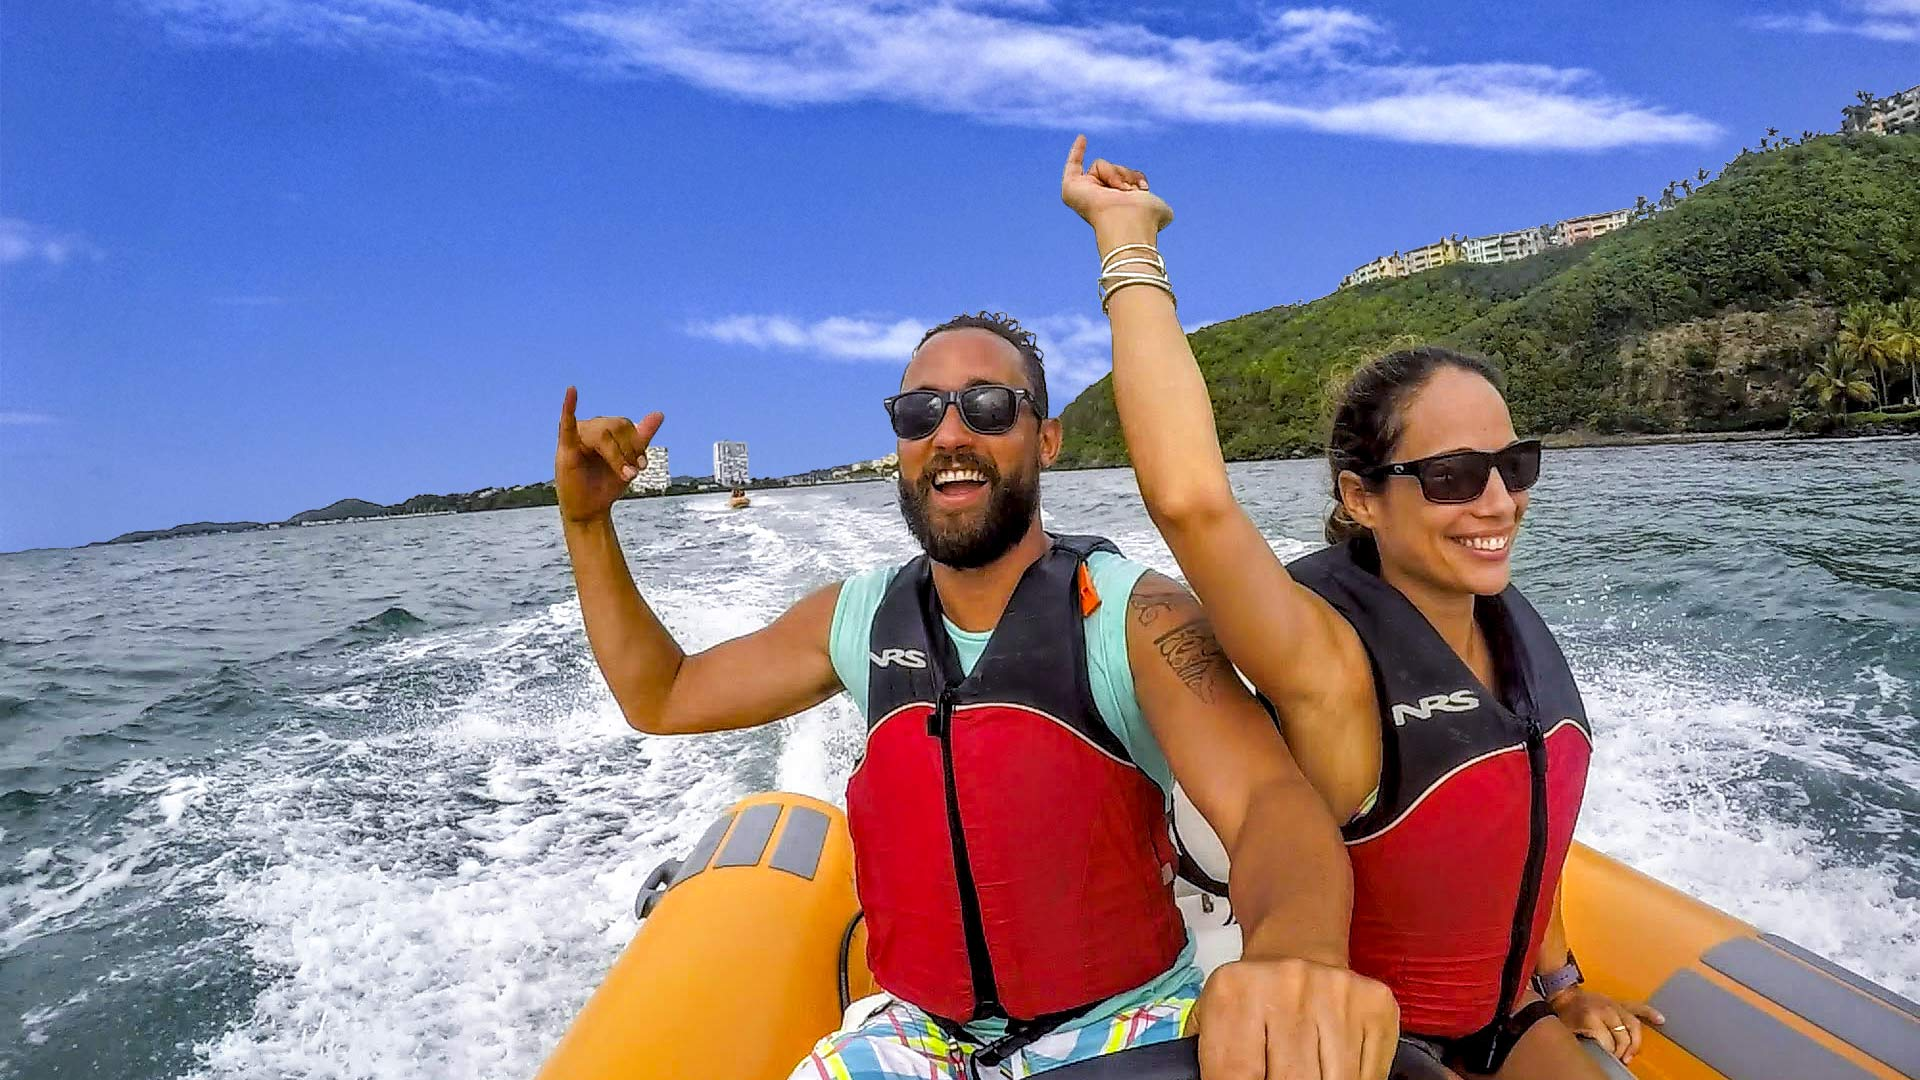 Man and woman enjoying the Snorkeling in Puerto Rico Mini Boat Tour of Kayaking Puerto Rico